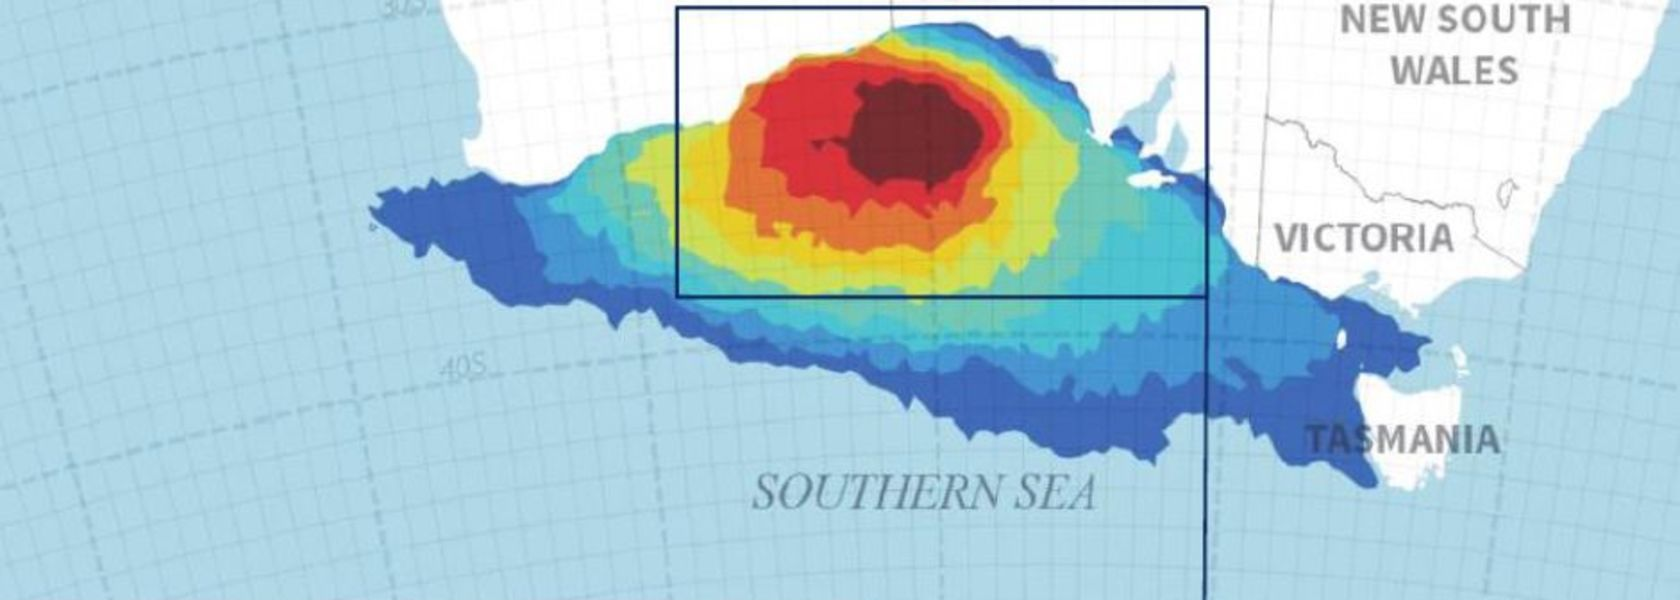 Bight spill could reach NZ: modelling